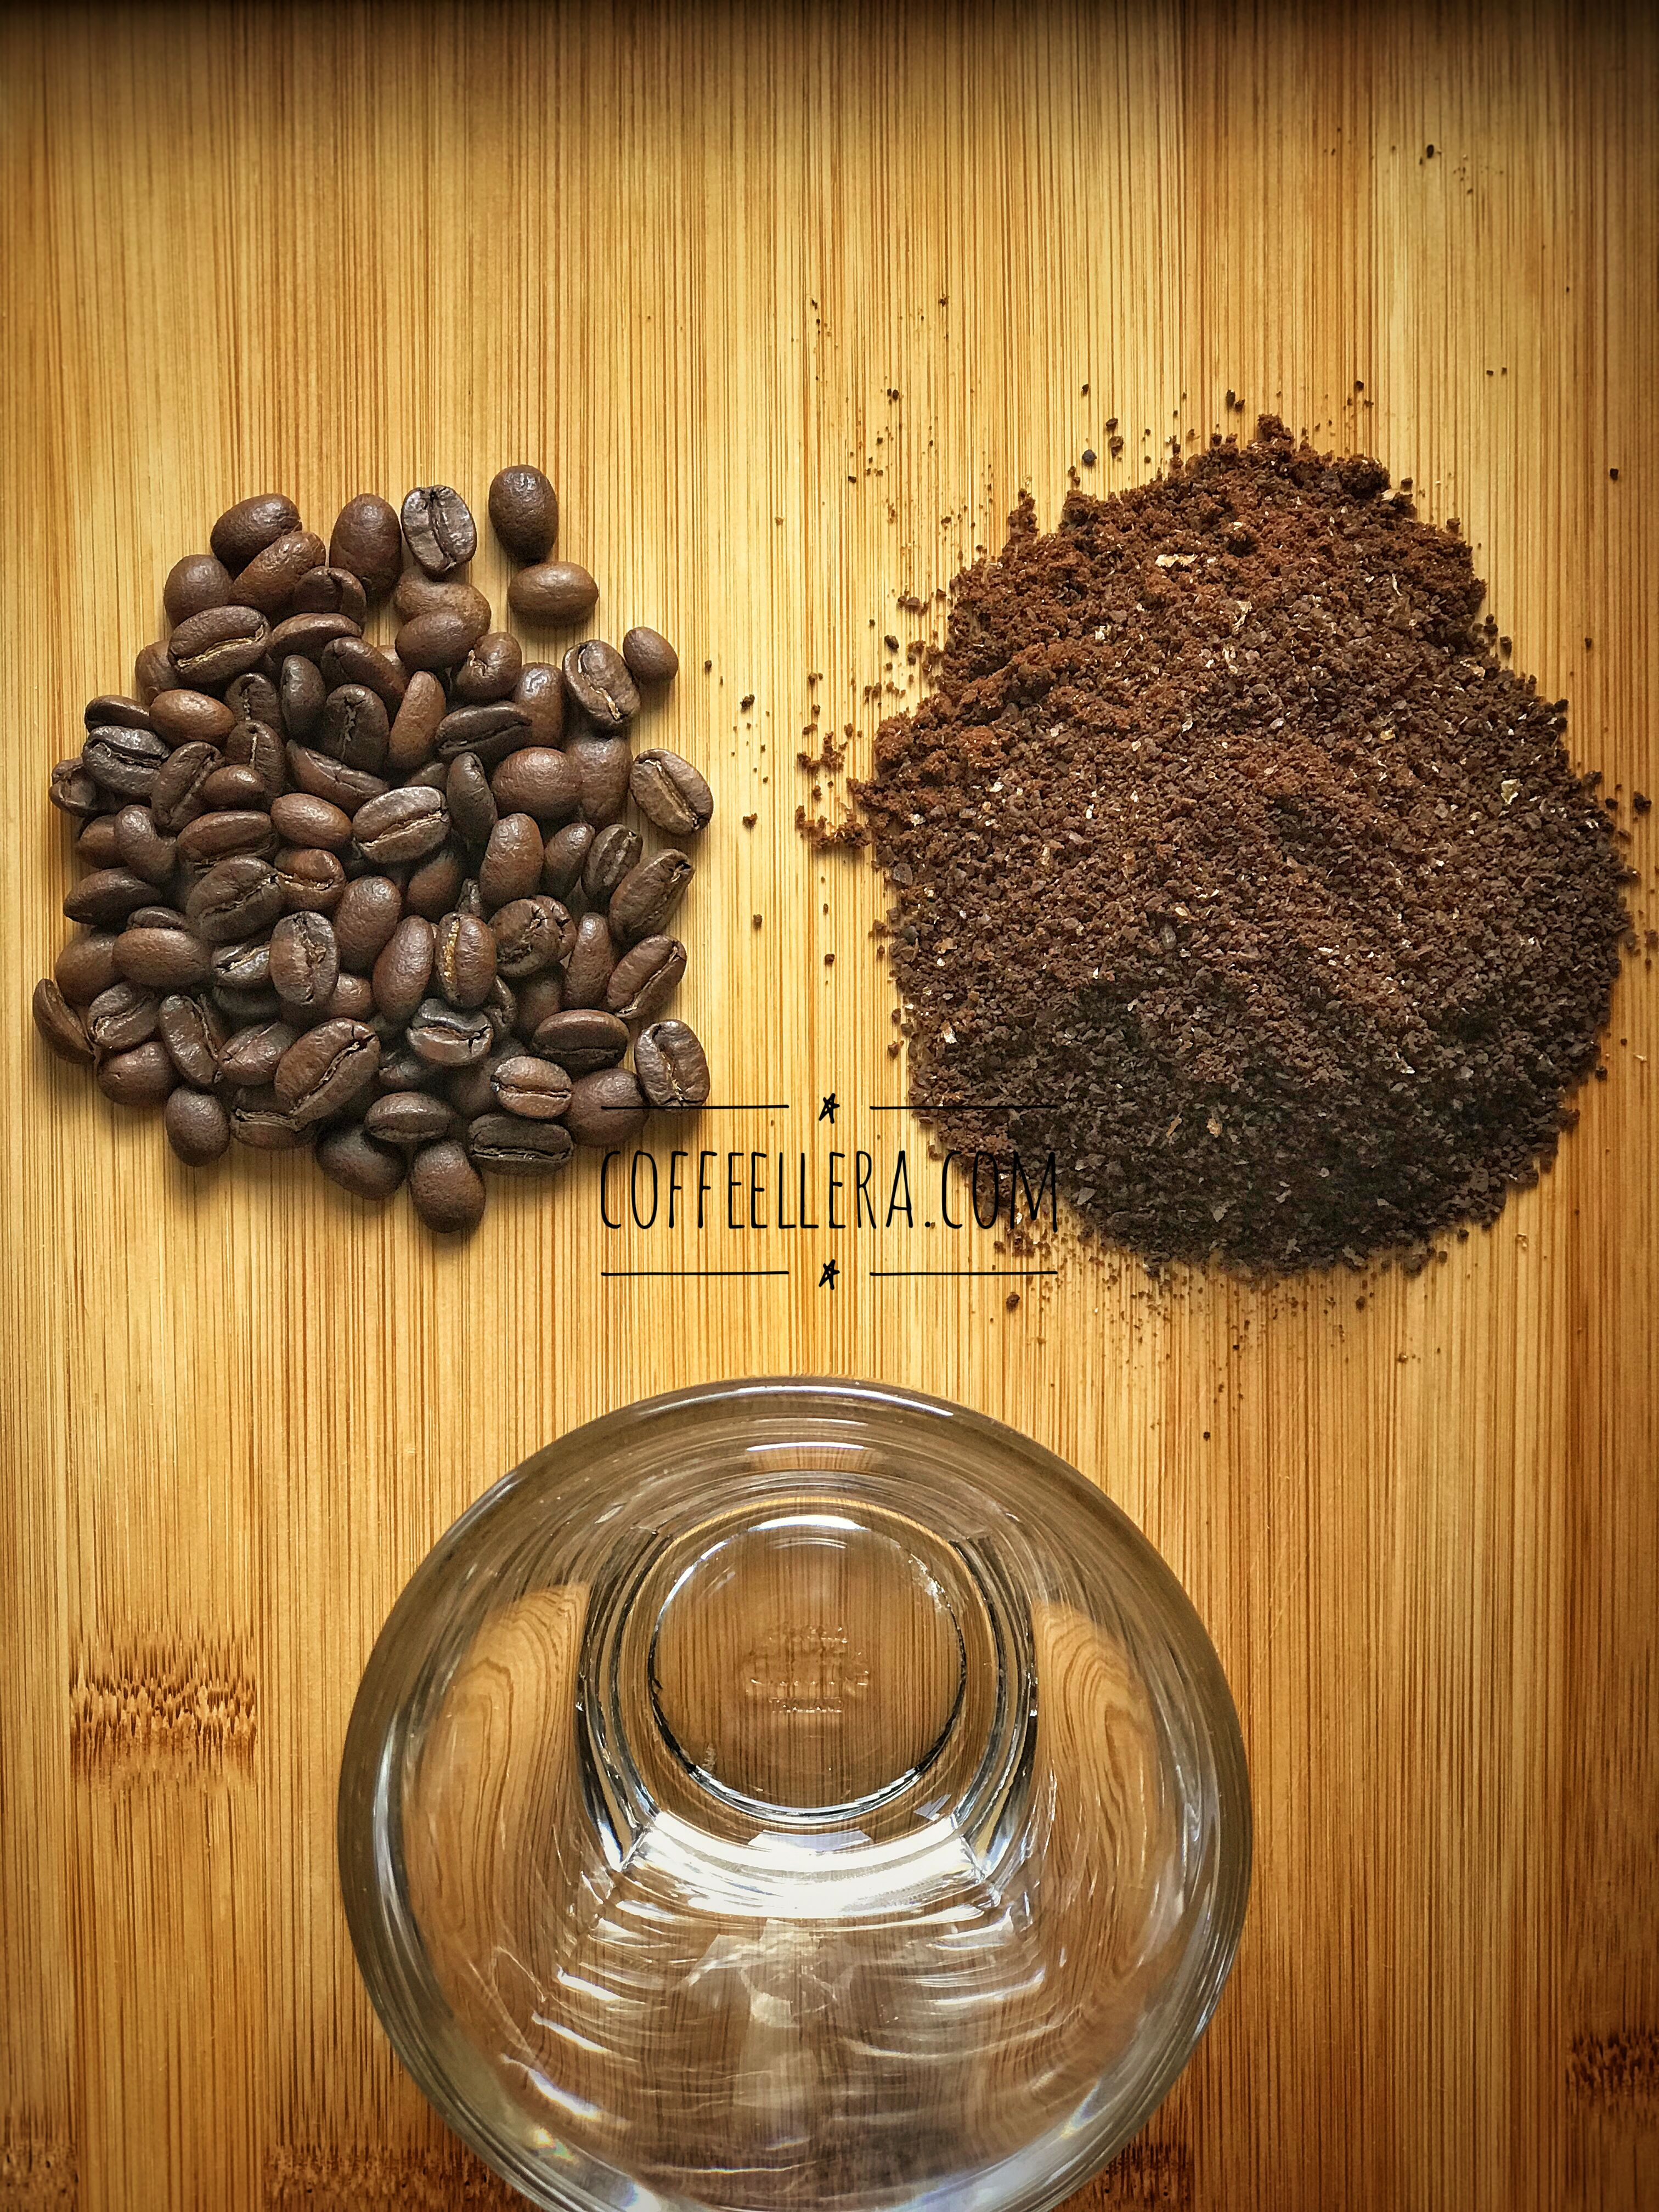 Coffee Supplier Philippines in 2020 Coffee beans, Coffee